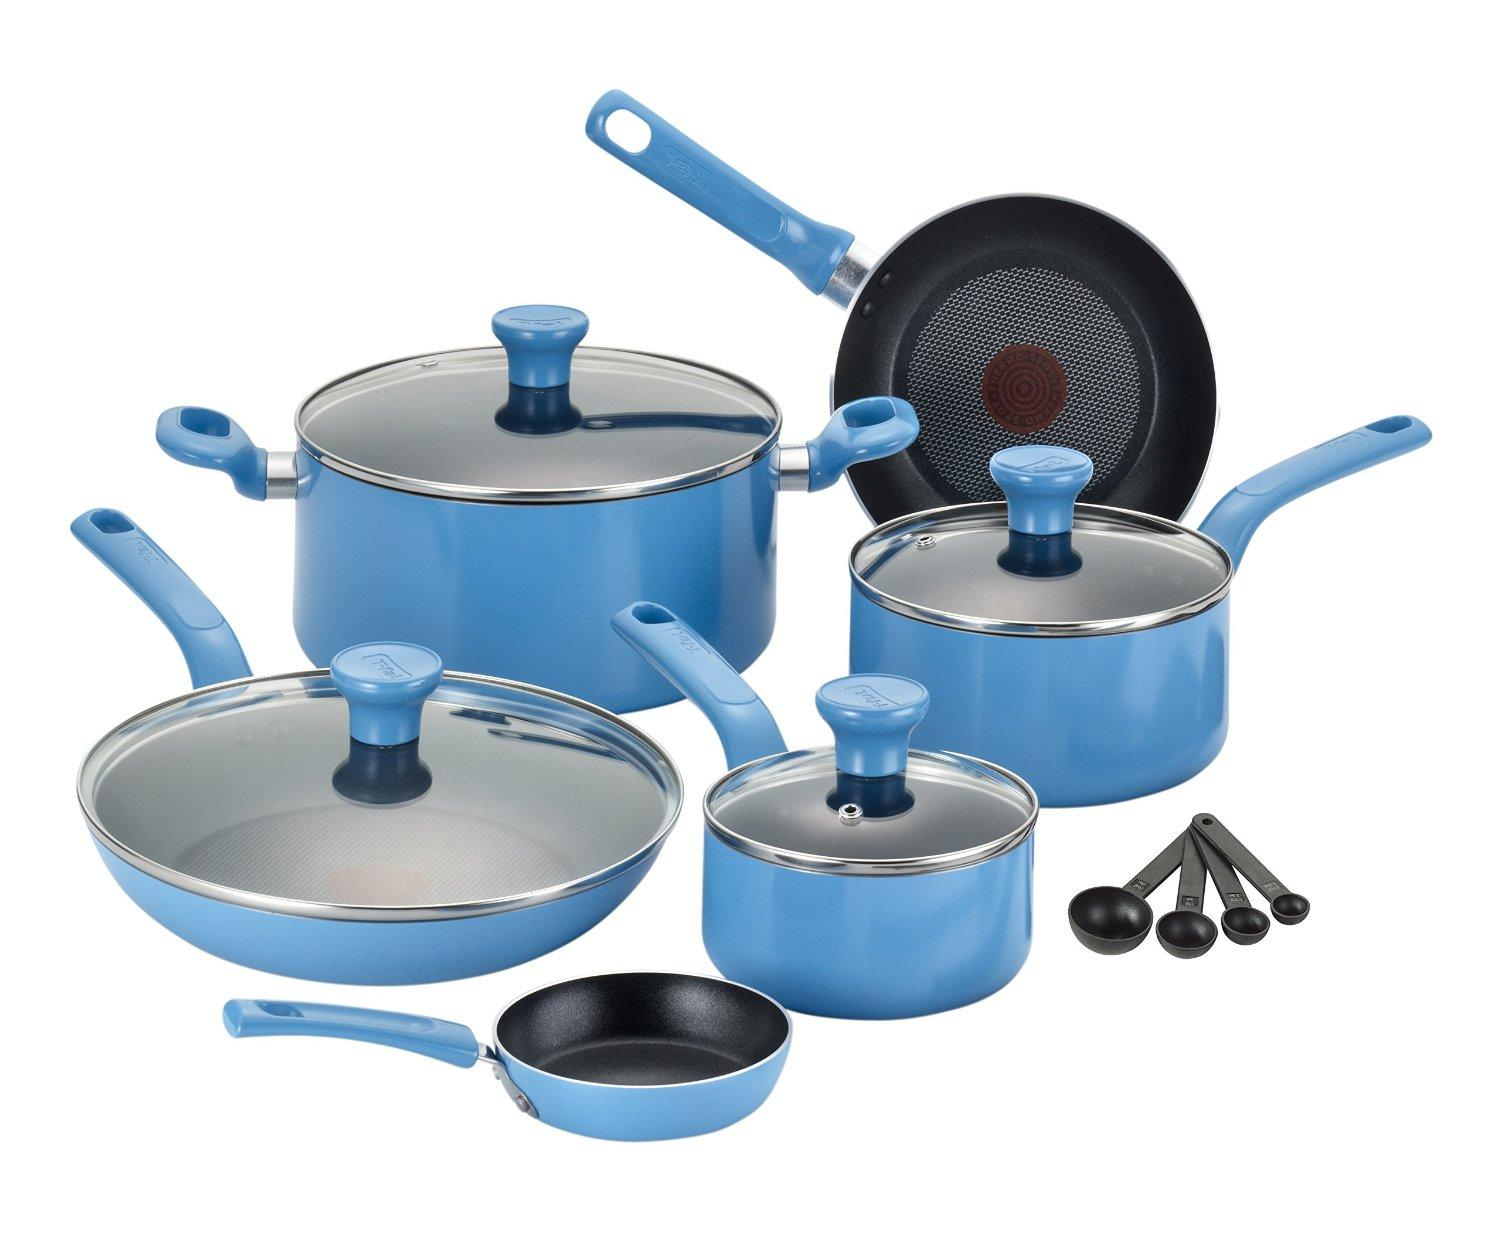 T-fal C969SE Excite Nonstick Dishwasher Safe / Oven Safe PFOA Free Cookware Set, 14-Piece